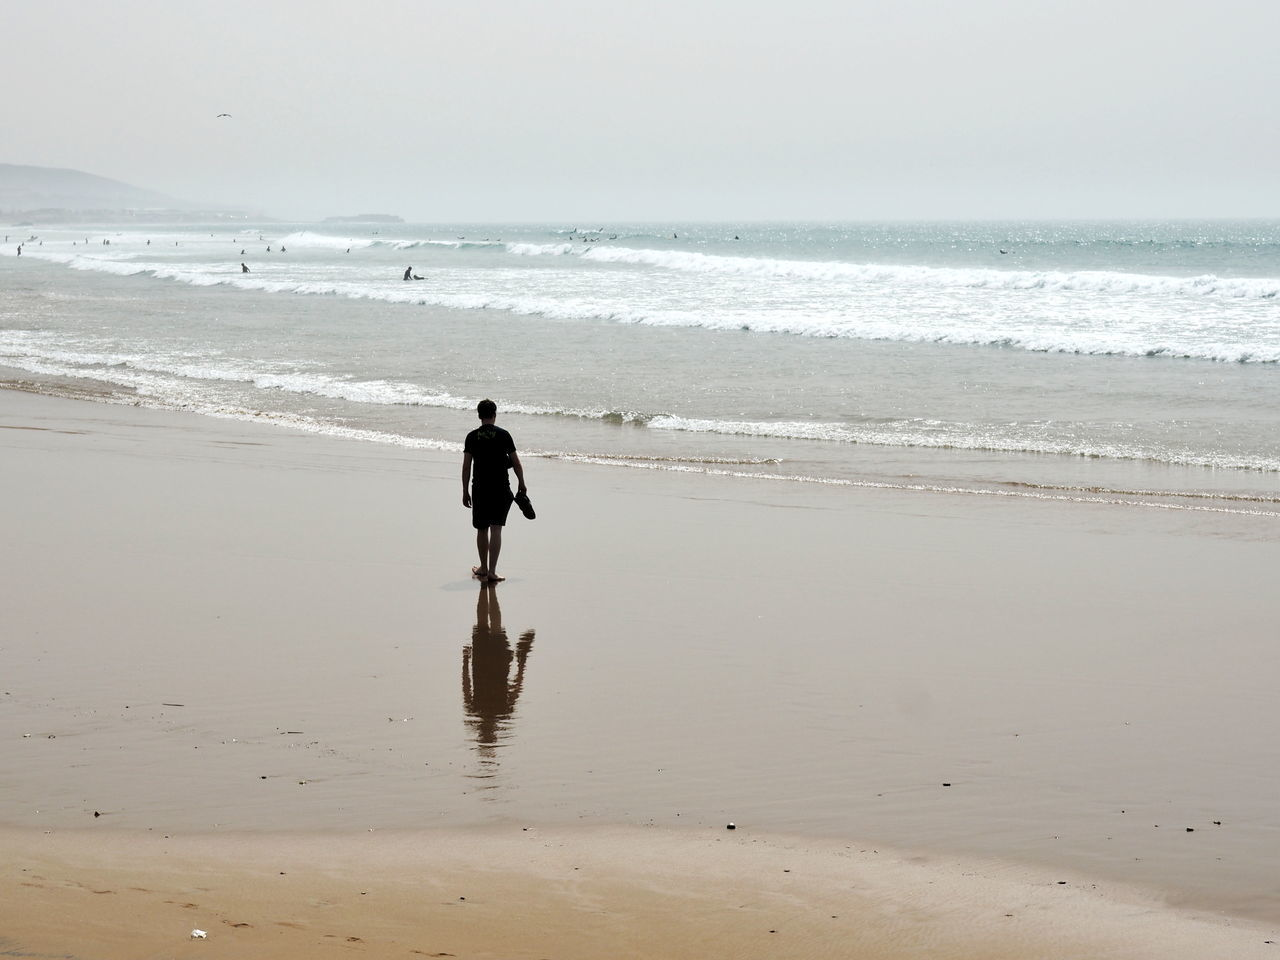 Beach Sea One Person Sand Only Men Wave Real People Beauty In Nature Men Water Nature One Man Only Full Length Day Outdoors Tranquility Scenics People Adult Horizon Over Water Taghazout Reflection Reflection_collection Morocco 🇲🇦 Morocco